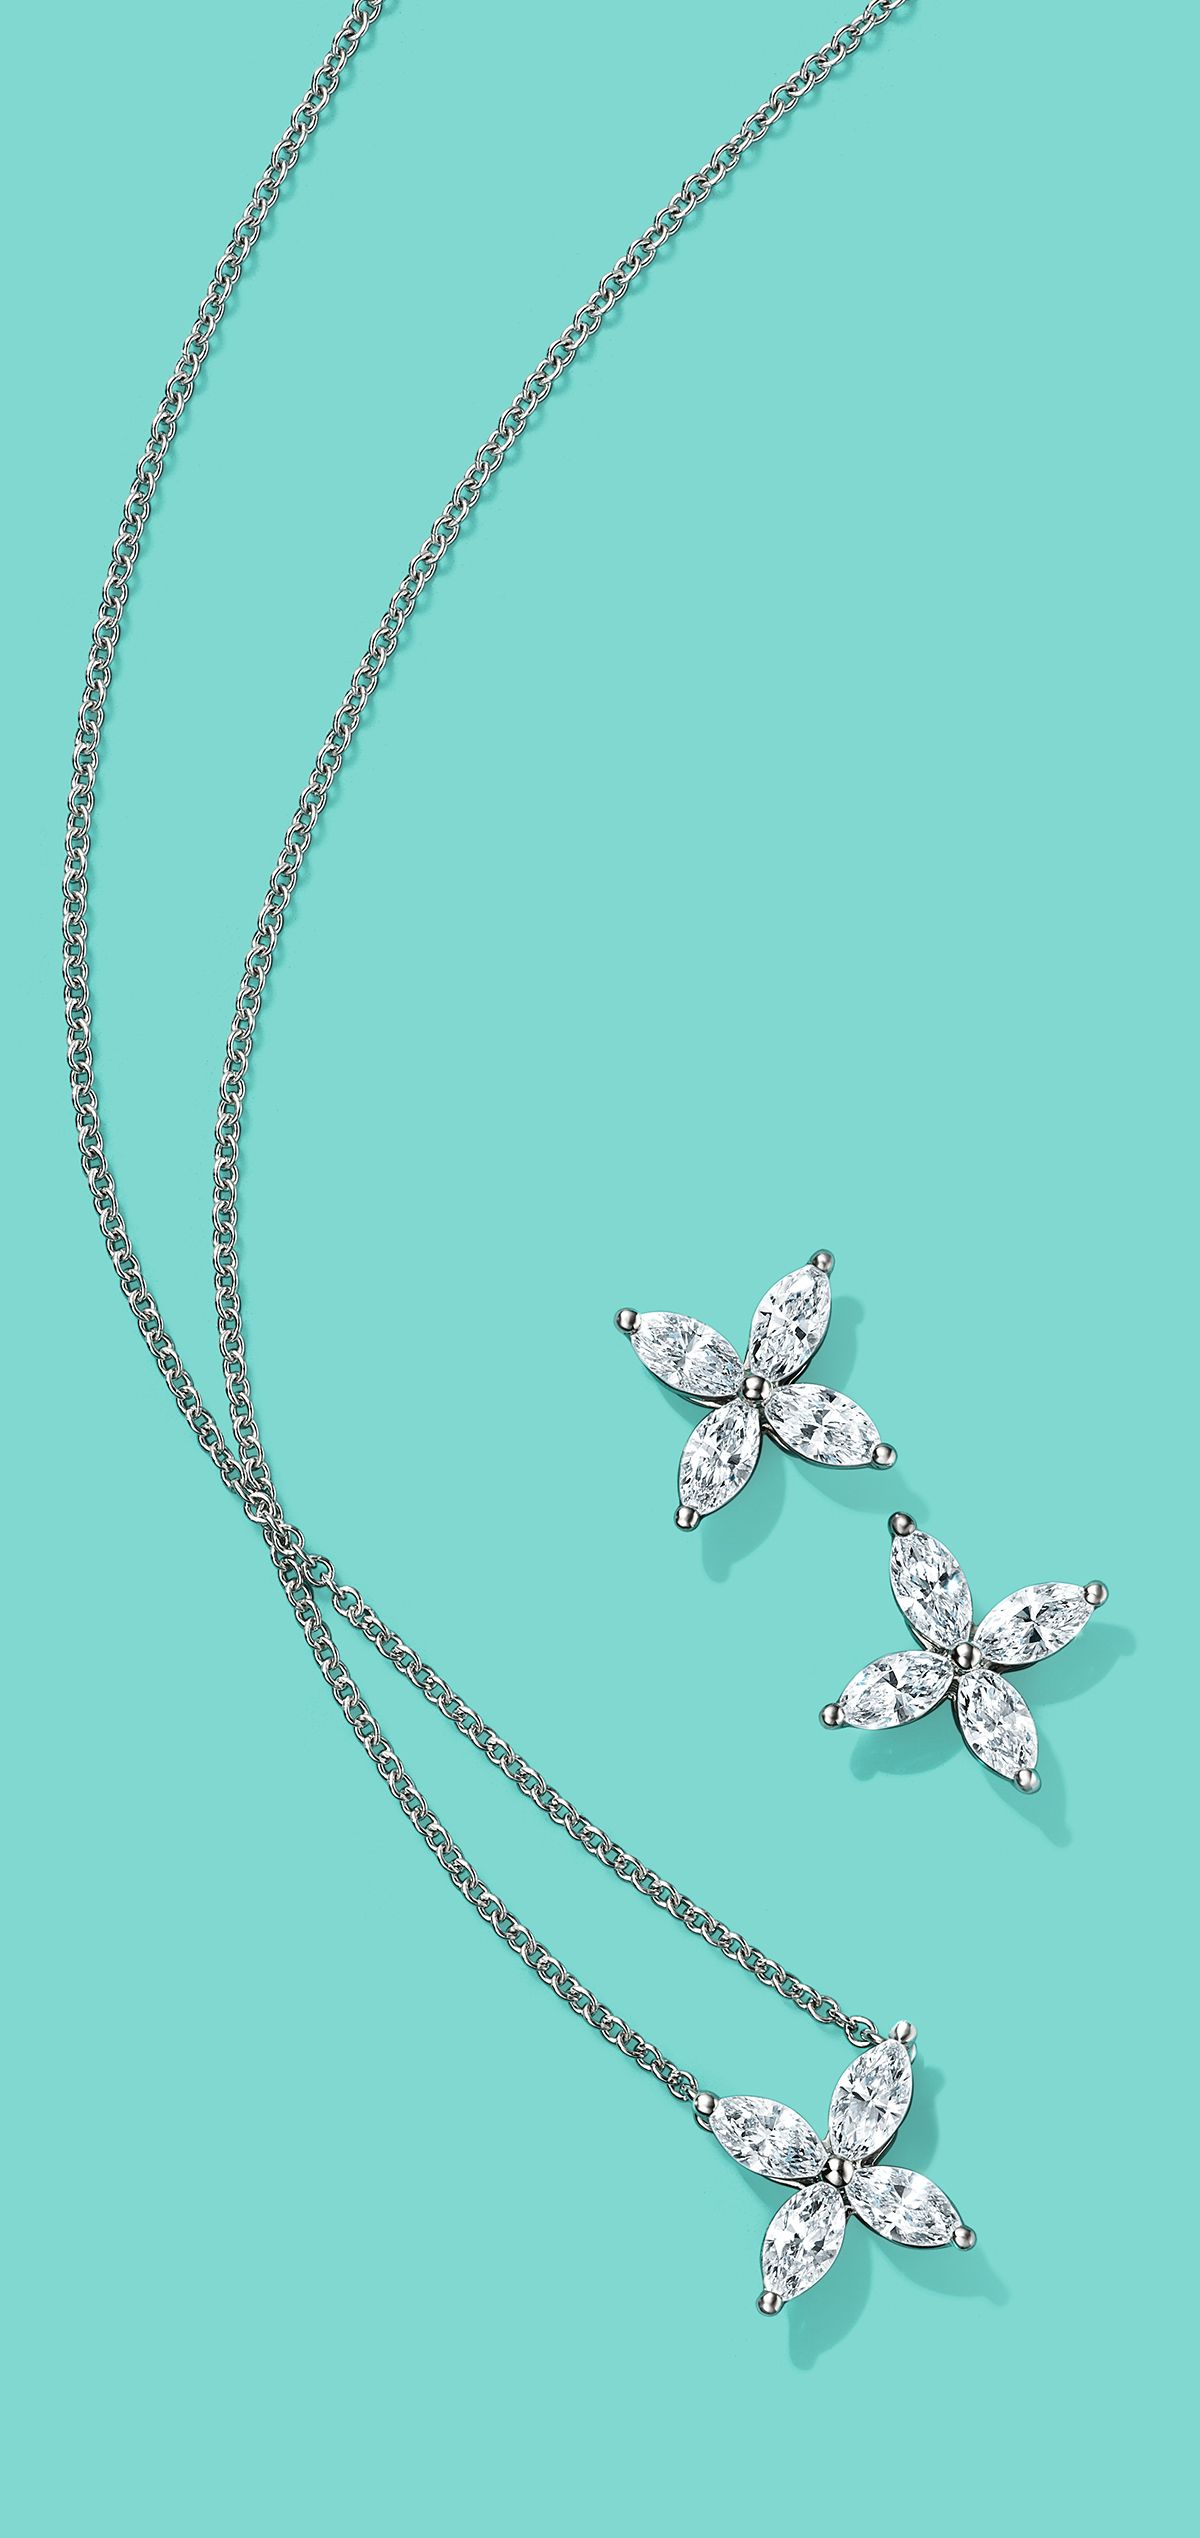 Let it snow. Tiffany Victoria® earrings and pendant in